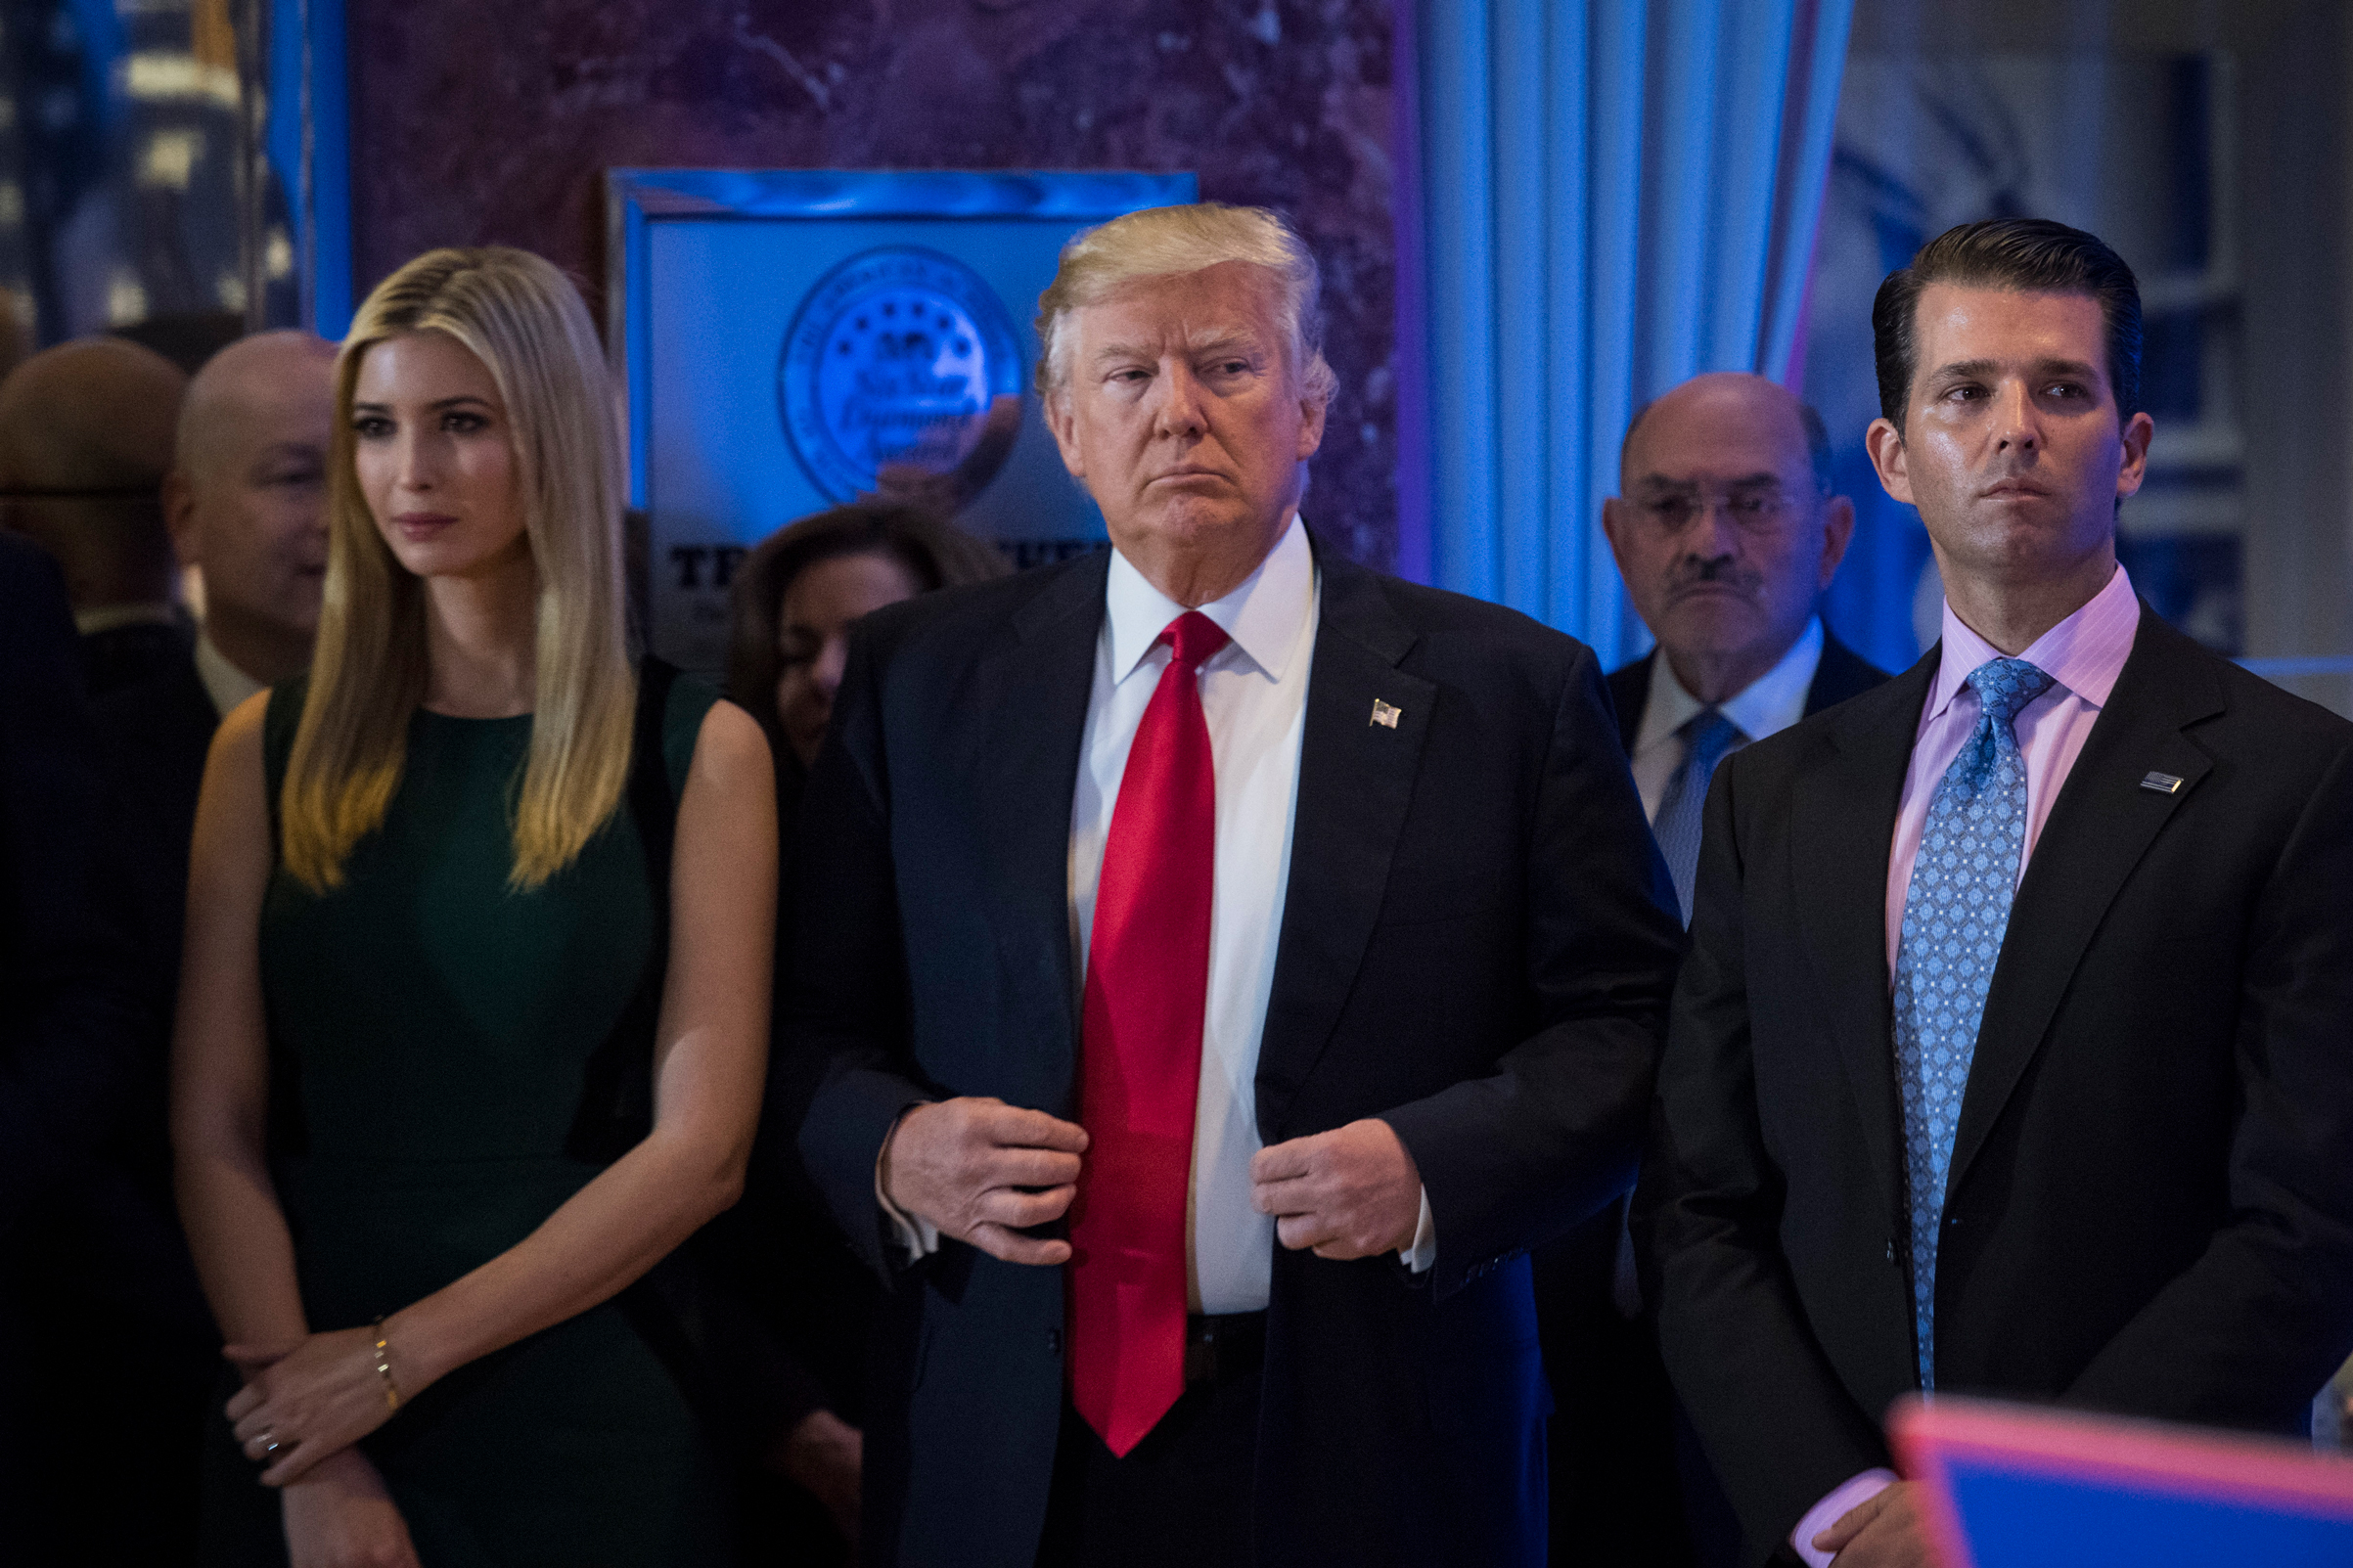 President-elect Donald Trump, Ivanka Trump, and Donald Trump Jr., listen during a press conference at Trump Tower in New York, NY, on Jan. 11, 2017.